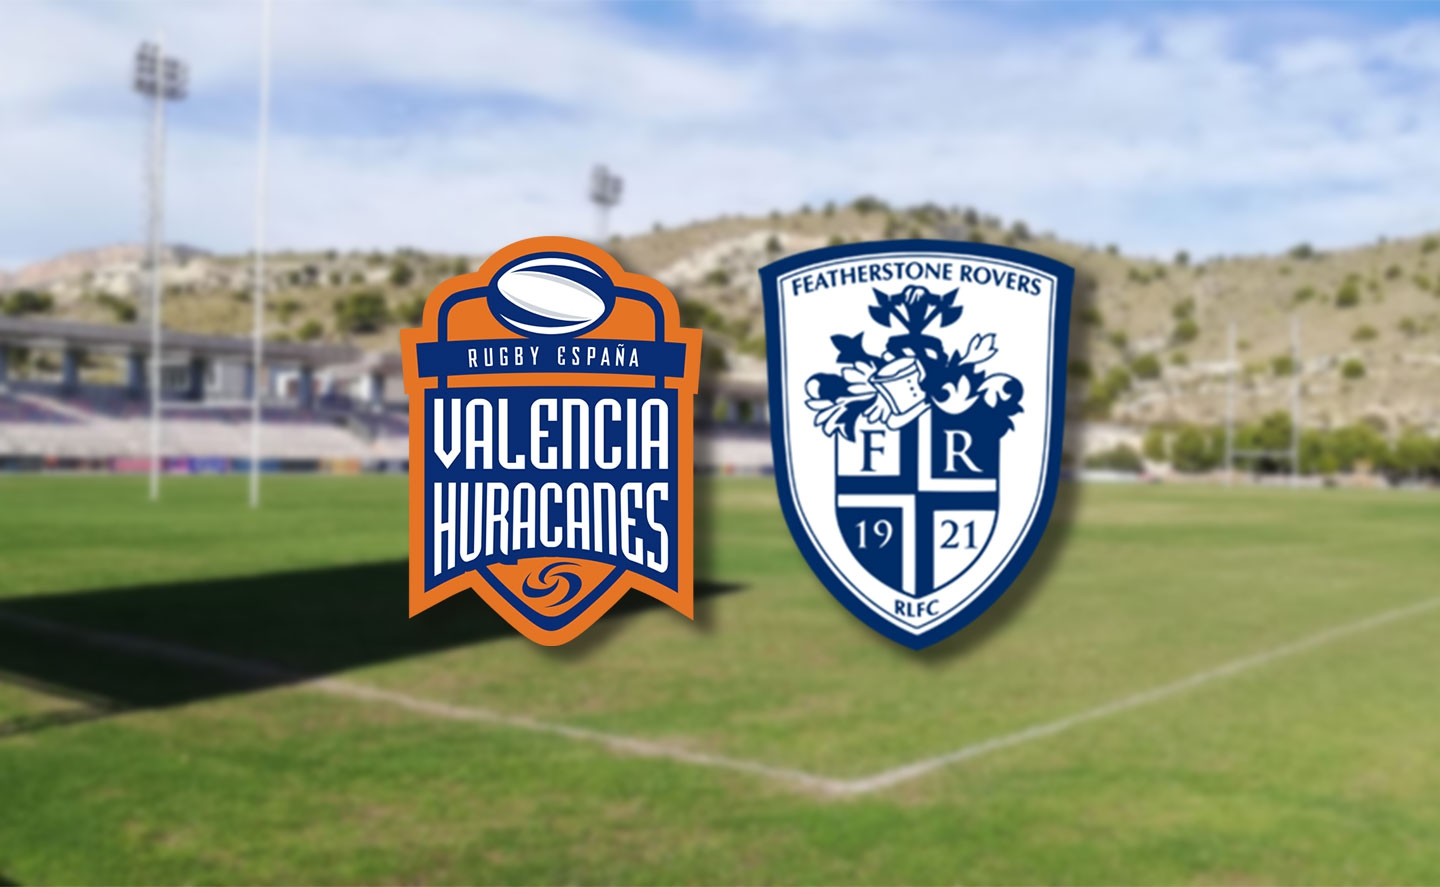 Valencia Huracanes v Featherstone Rovers Launch Match